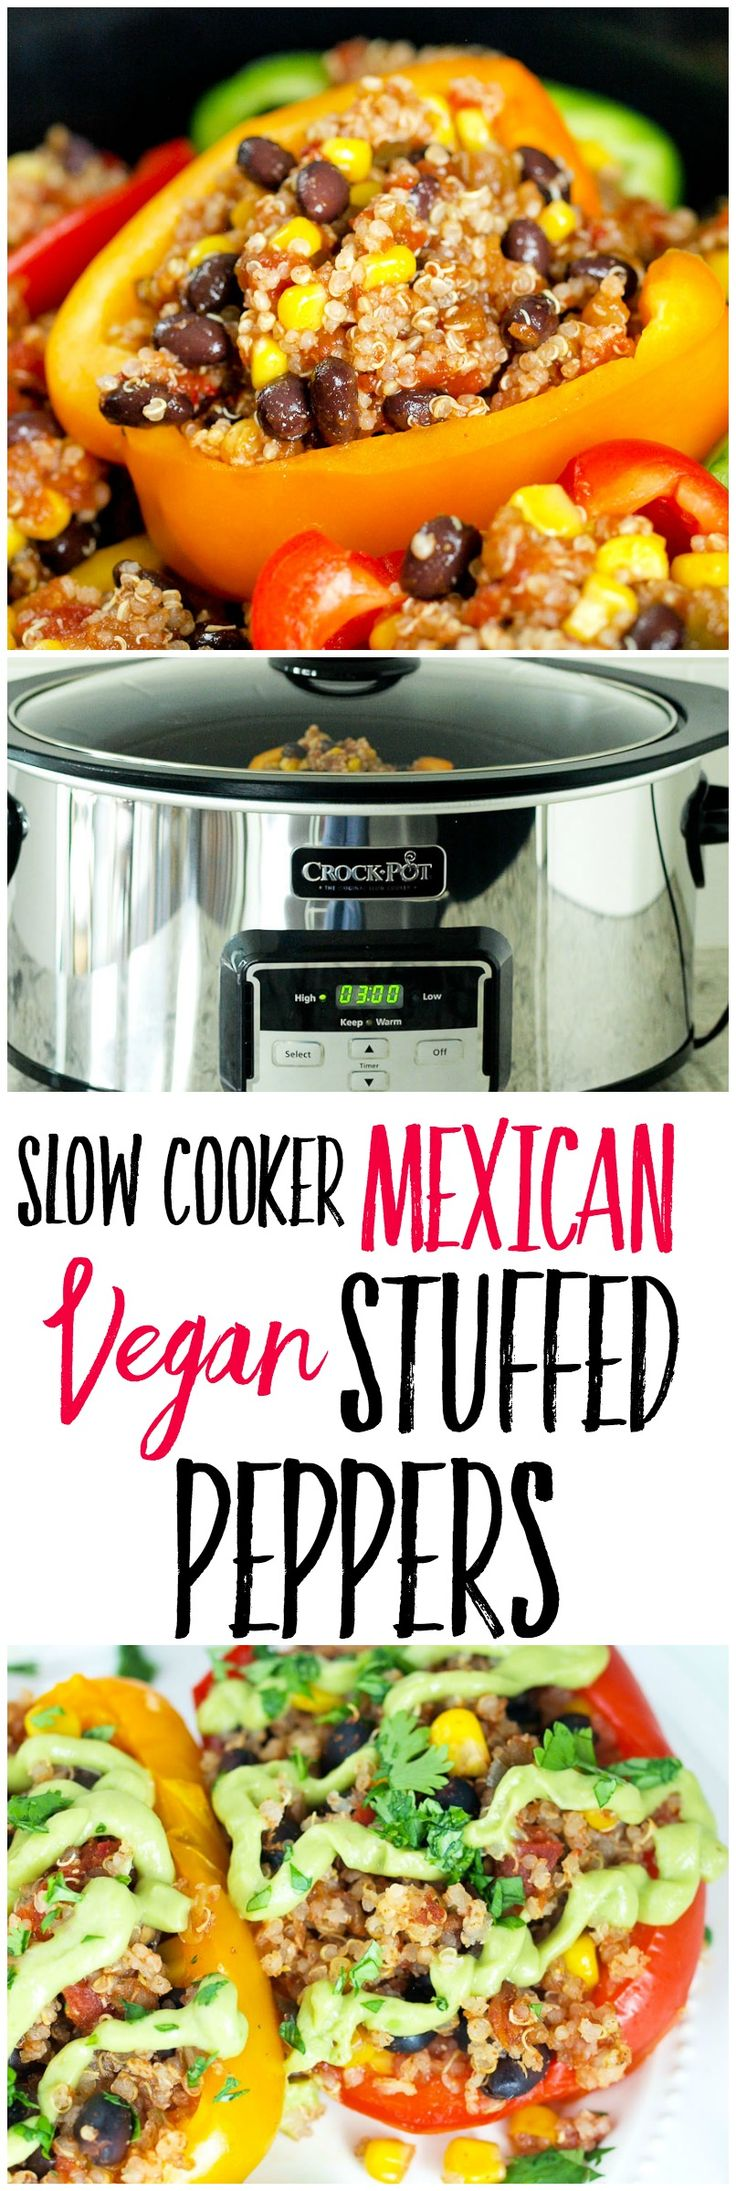 This slow cooker Vegan Mexican Stuffed Peppers recipe makes a healthy weeknight dinner idea that your whole family will love! Use your Crock-Pot® to makes this vegan, gluten-free, DELICIOUS dinner! (Vegan Mexican Recipes)